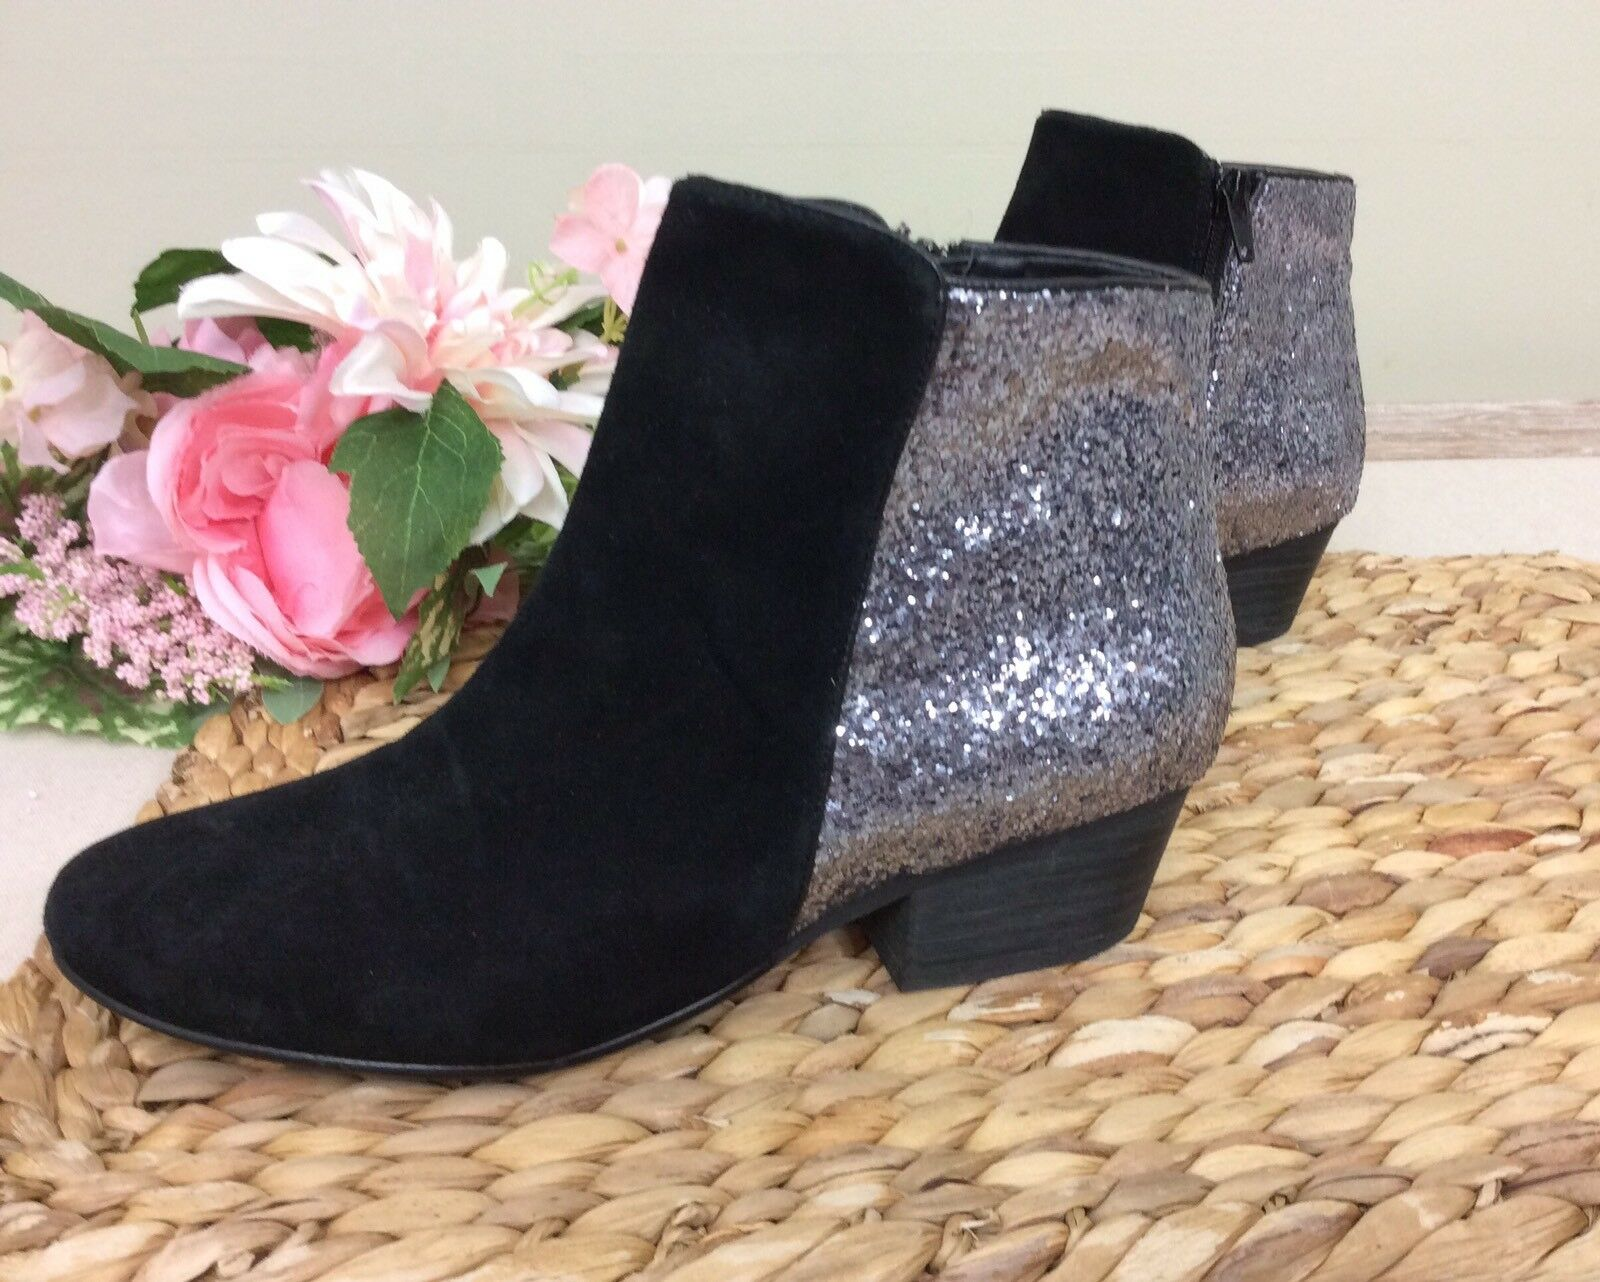 Women's Kelsi Dagger Ankle Boots Booties sz 6 Black Suede With Silver Sparkle